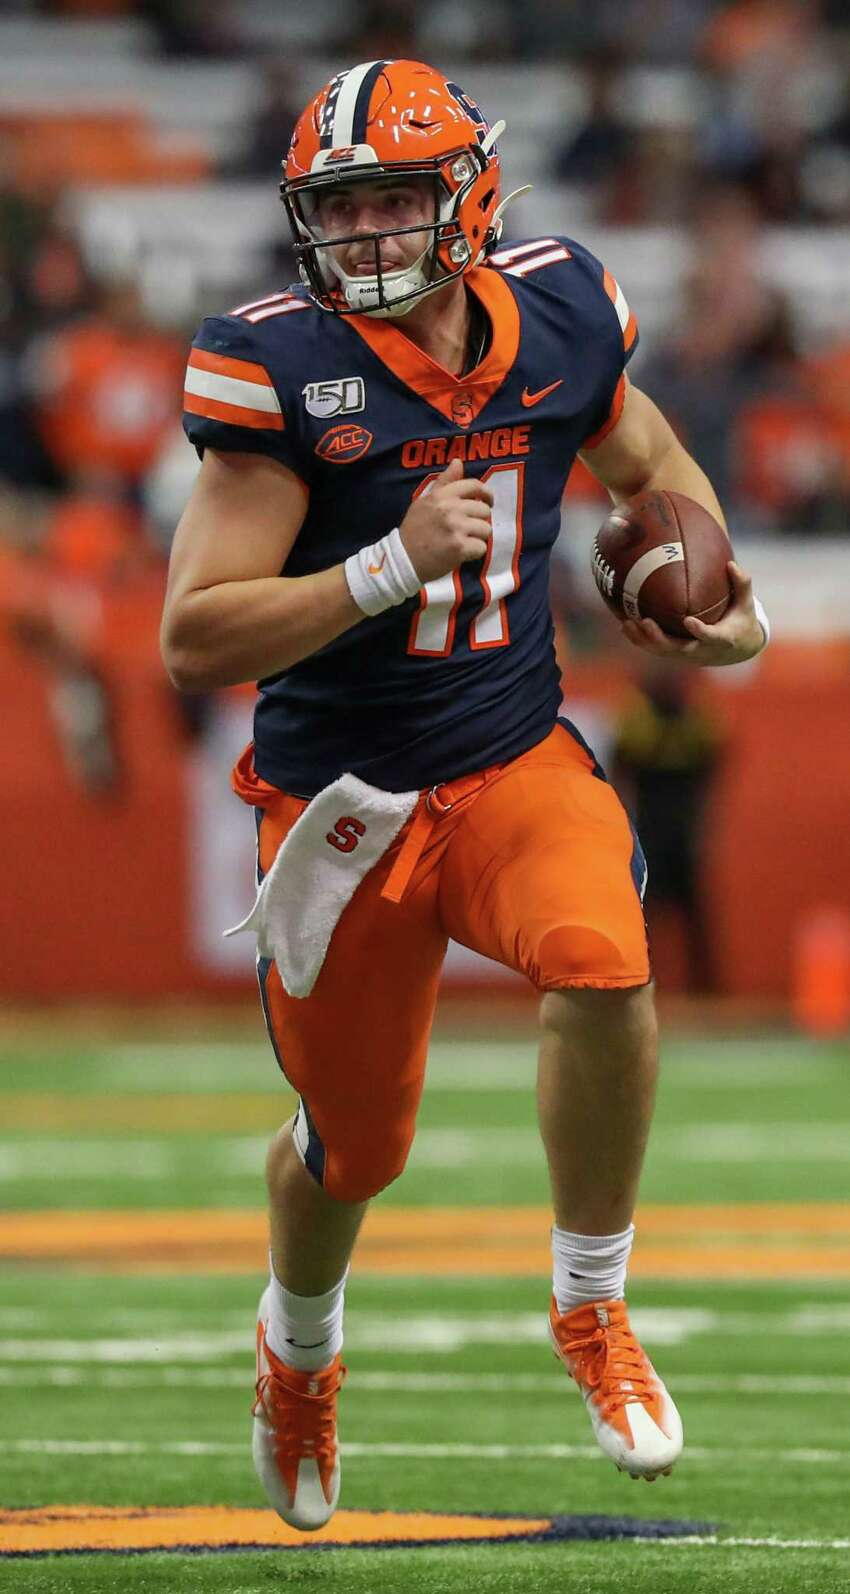 Syracuse quarterback Clayton Welch scrambles during the Orange's game against the Pitt Panthers on Friday, Oct. 18 in the Carrier Dome in Syracuse, N.Y. Welch stepped in for starting quarterback Tommy DeVito, who was injured during a play in the 3rd quarter. Pitt won 27-20.